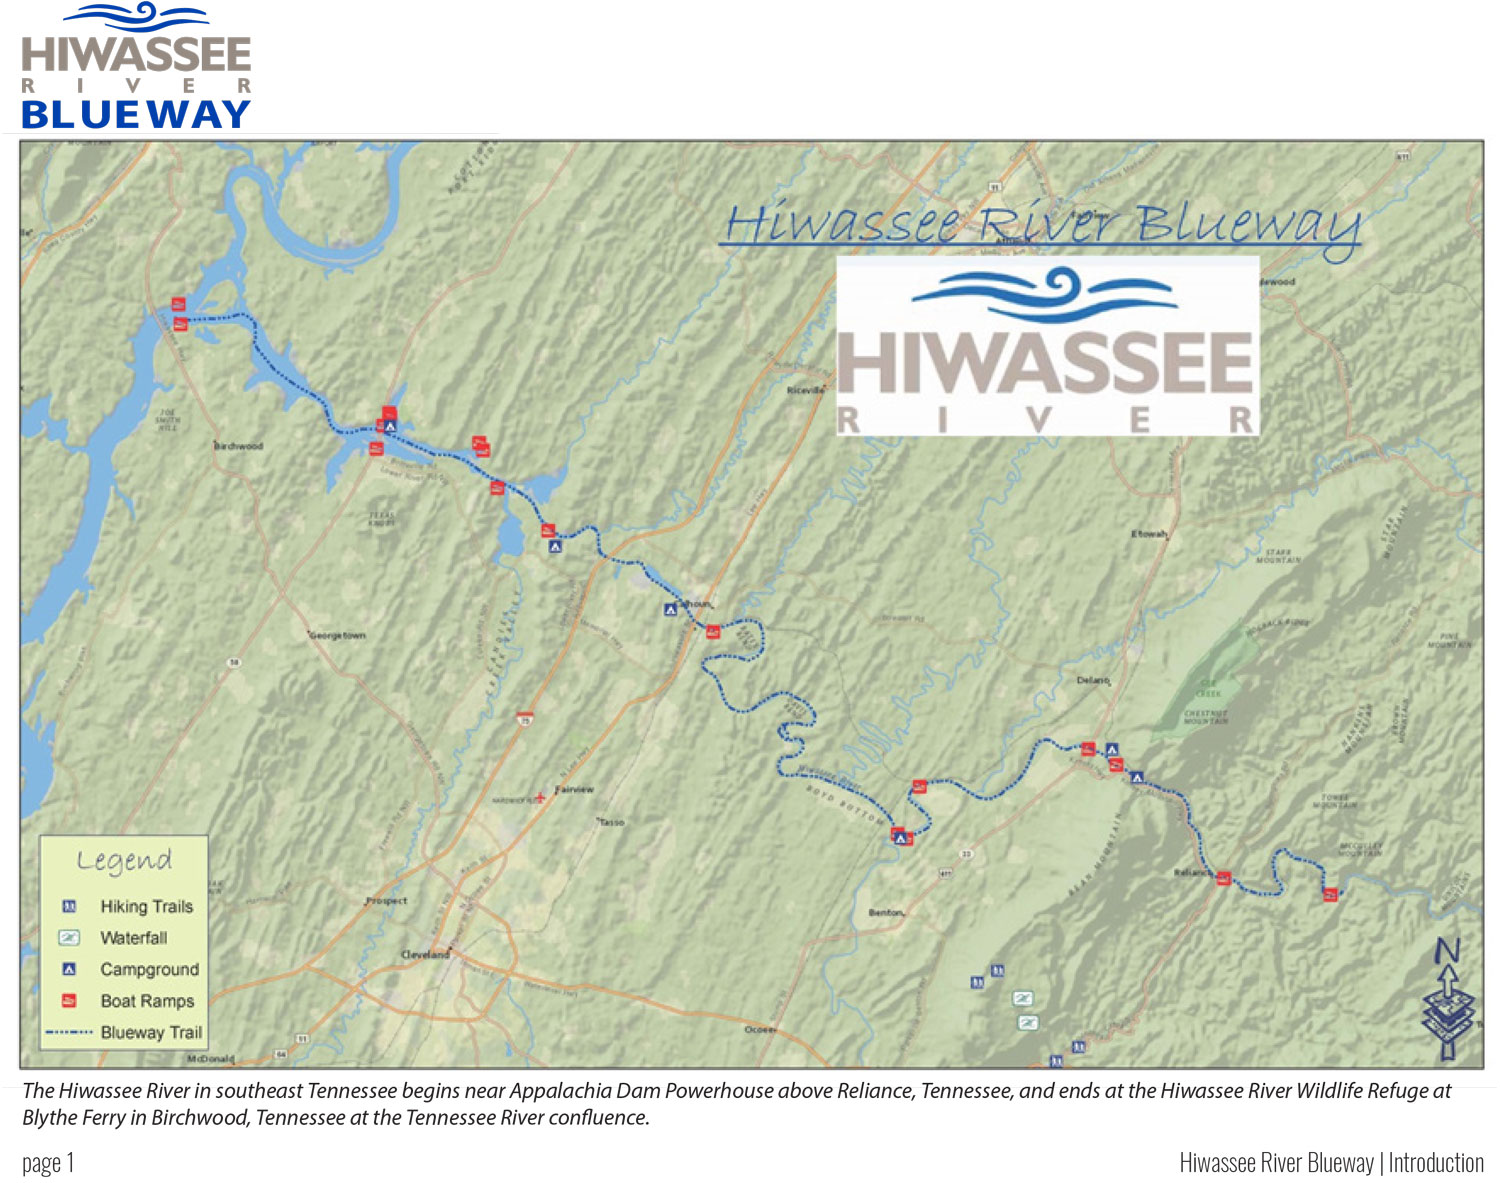 Pages-from-HiwasseeBluewayManual2016-06-29.jpg